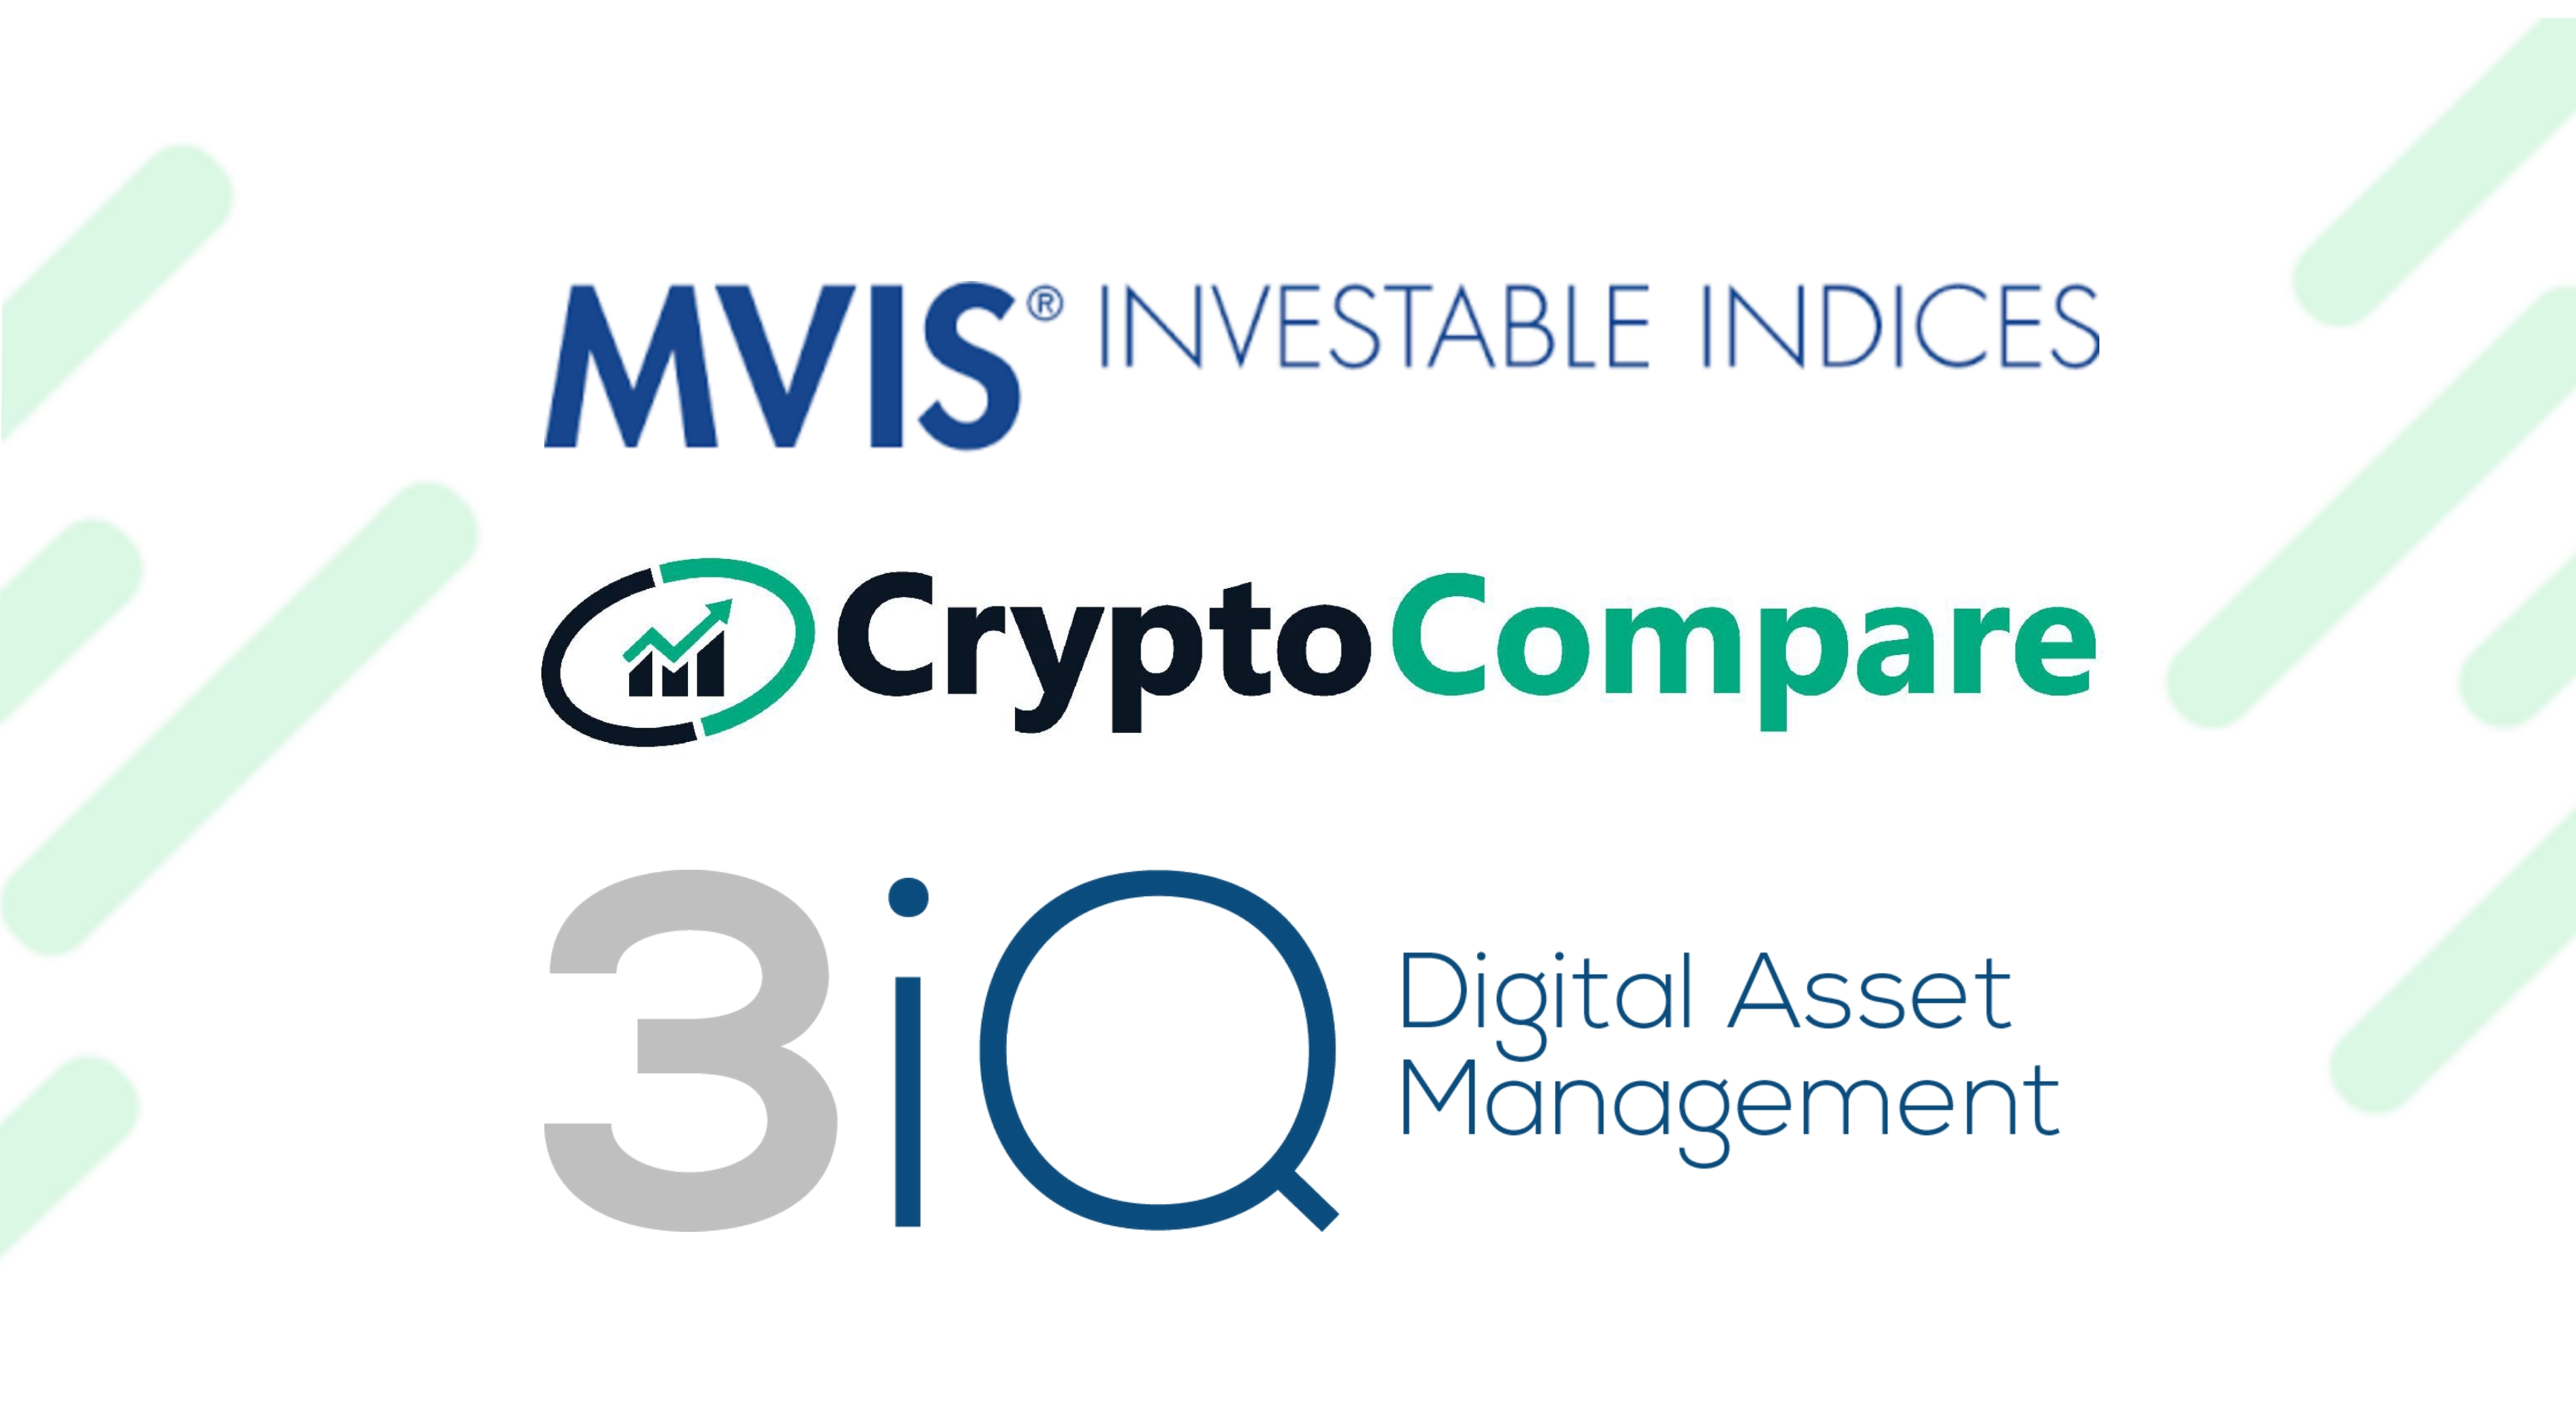 MVIS CryptoCompare Ethereum Benchmark Rate and MVIS CryptoCompare Bitcoin Benchmark Rate Licensed to 3iQ